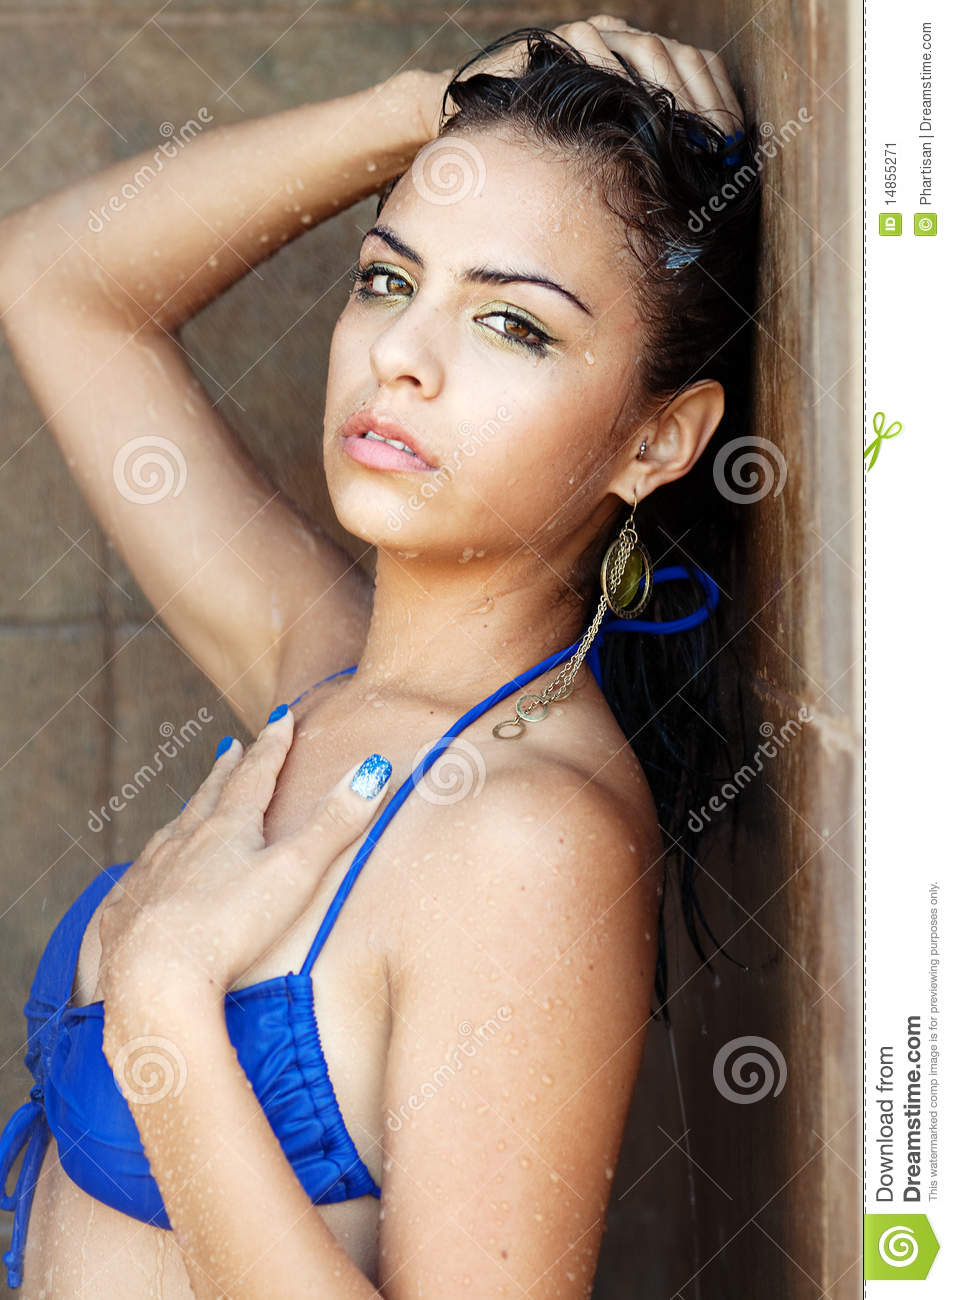 Young woman relaxing in a pool spa shower